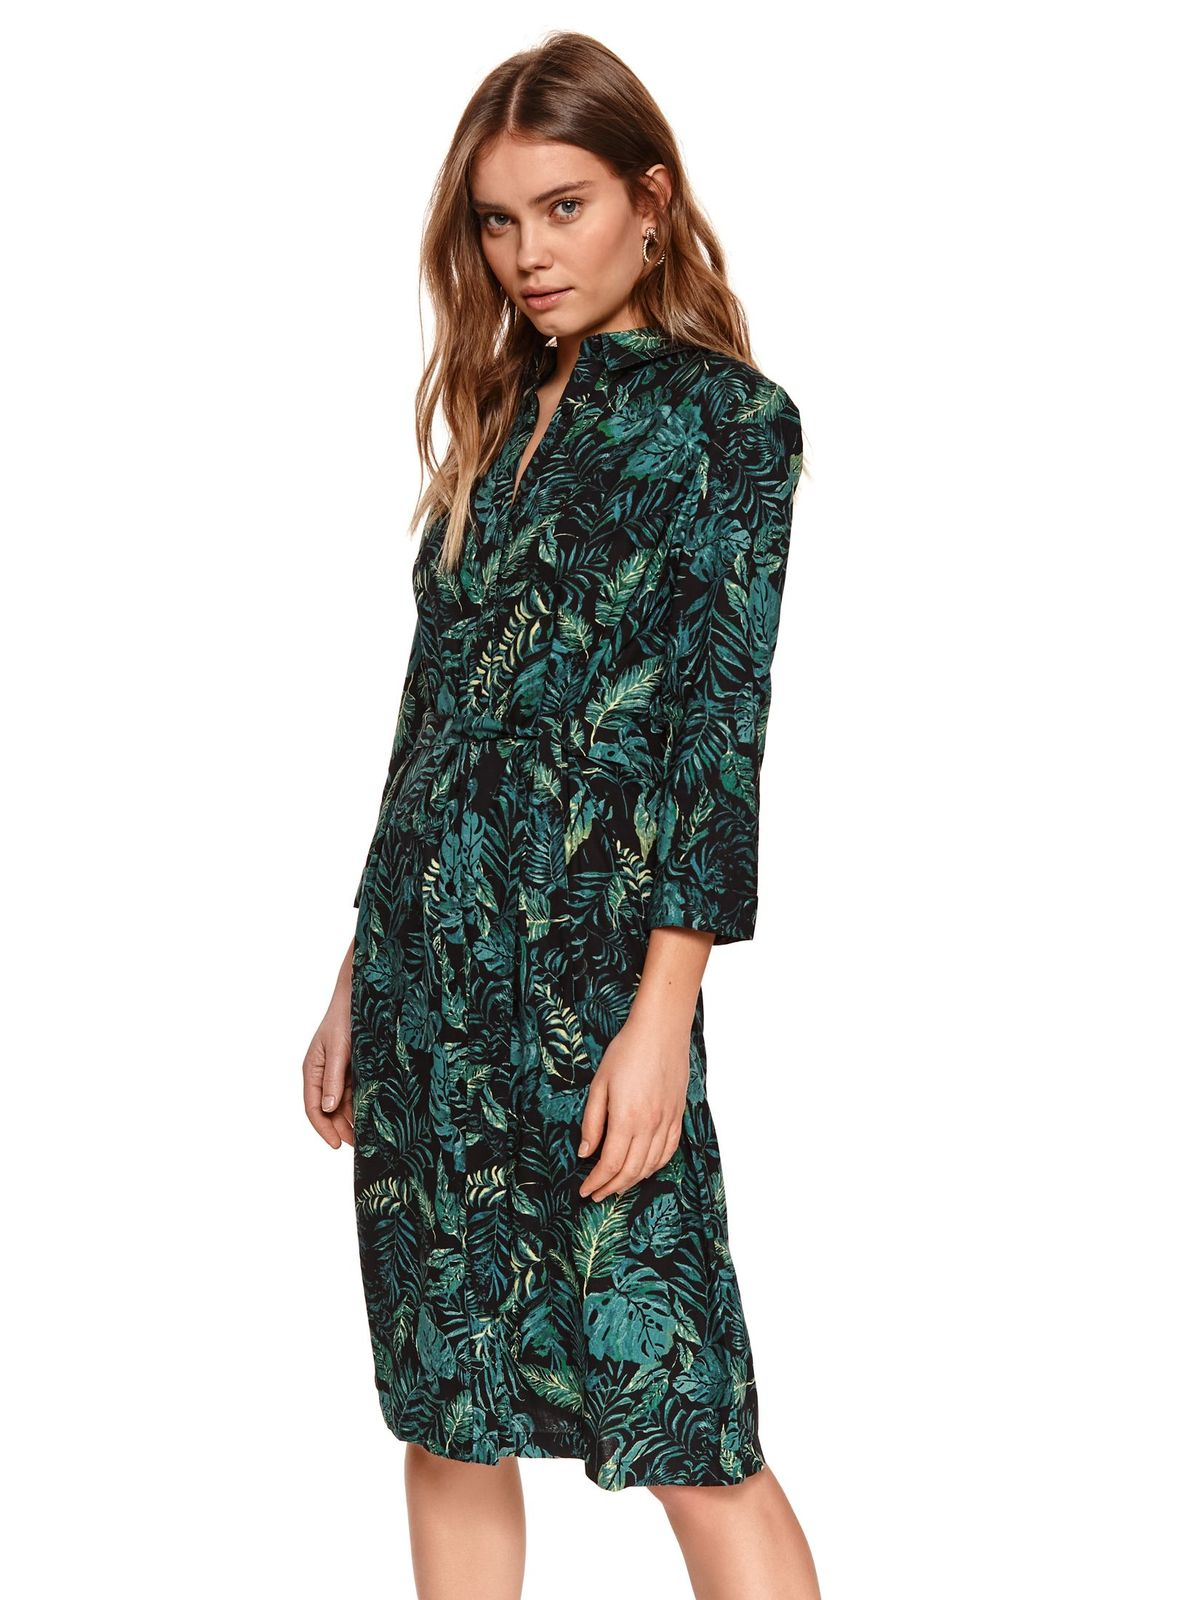 Black dress with floral print airy fabric accessorized with tied waistband midi